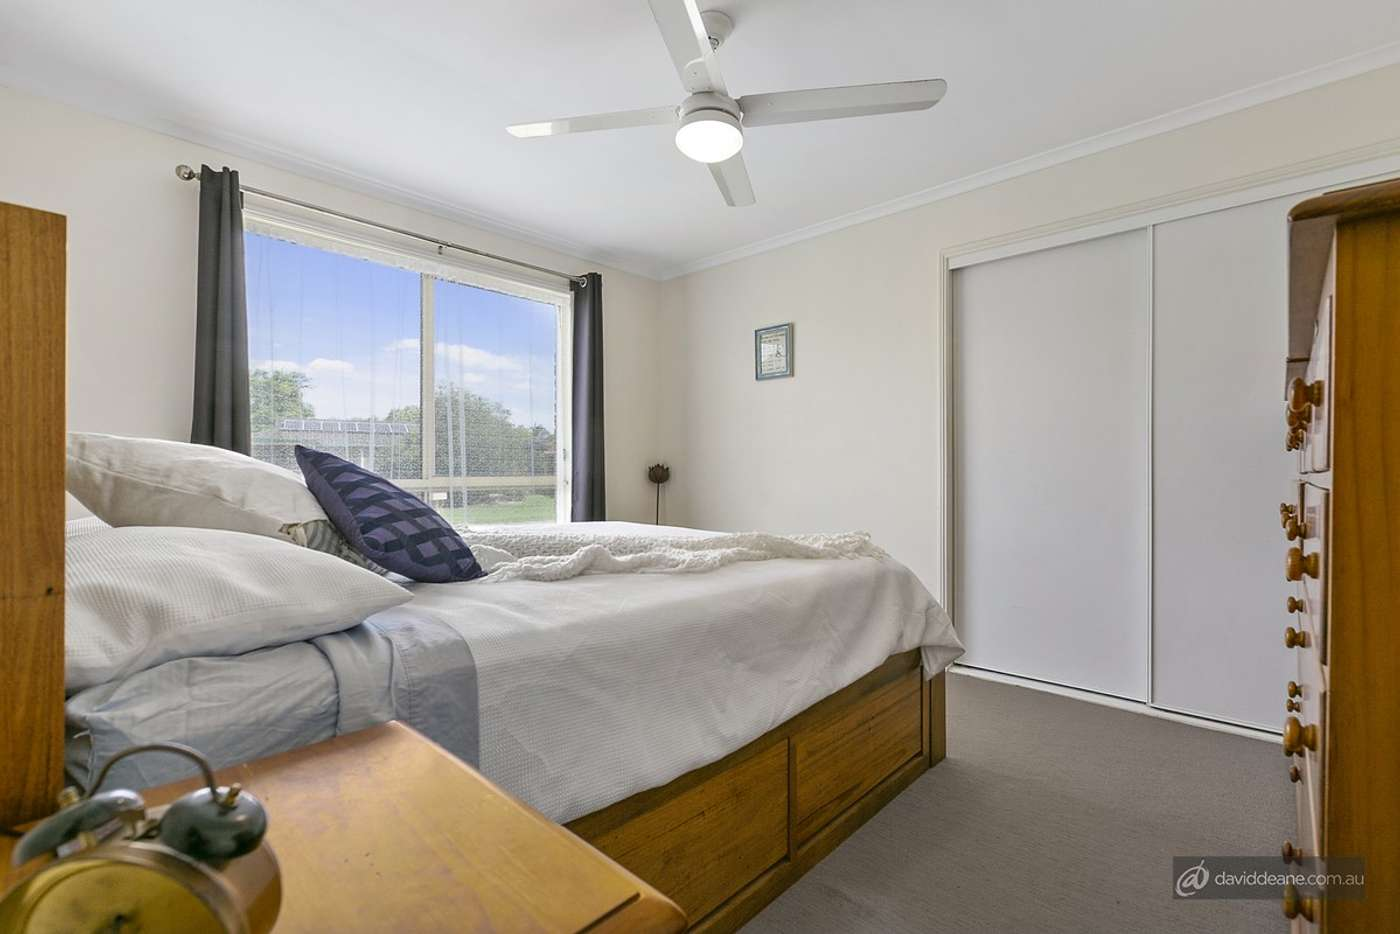 Seventh view of Homely house listing, 15 Newbury Crescent, Lawnton QLD 4501